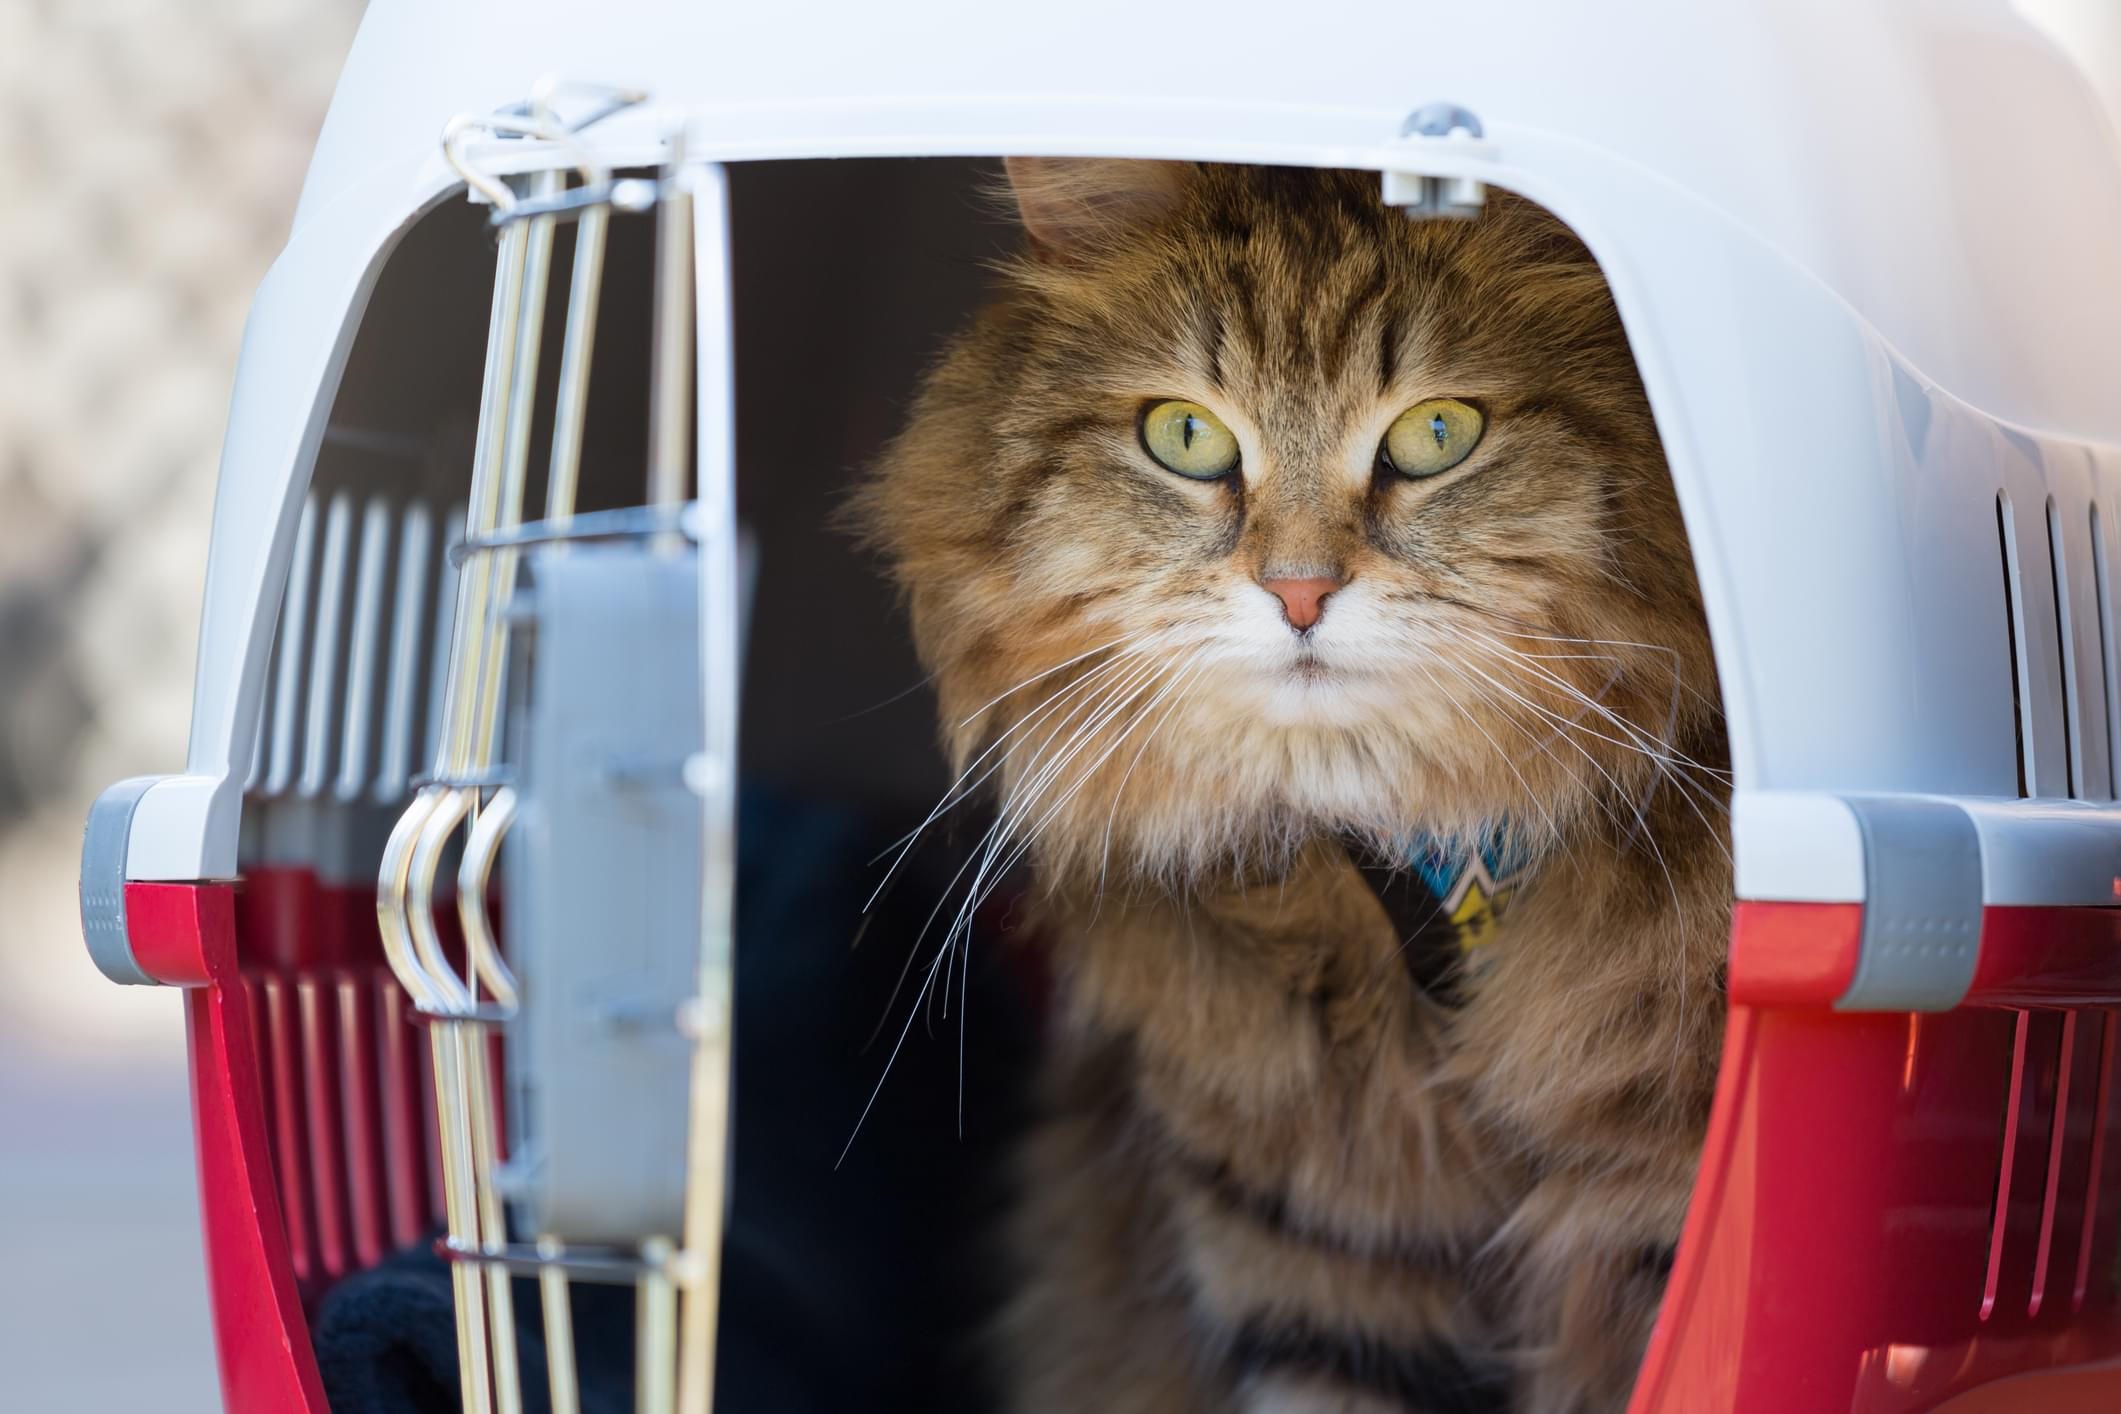 Tabby cat in a red cage